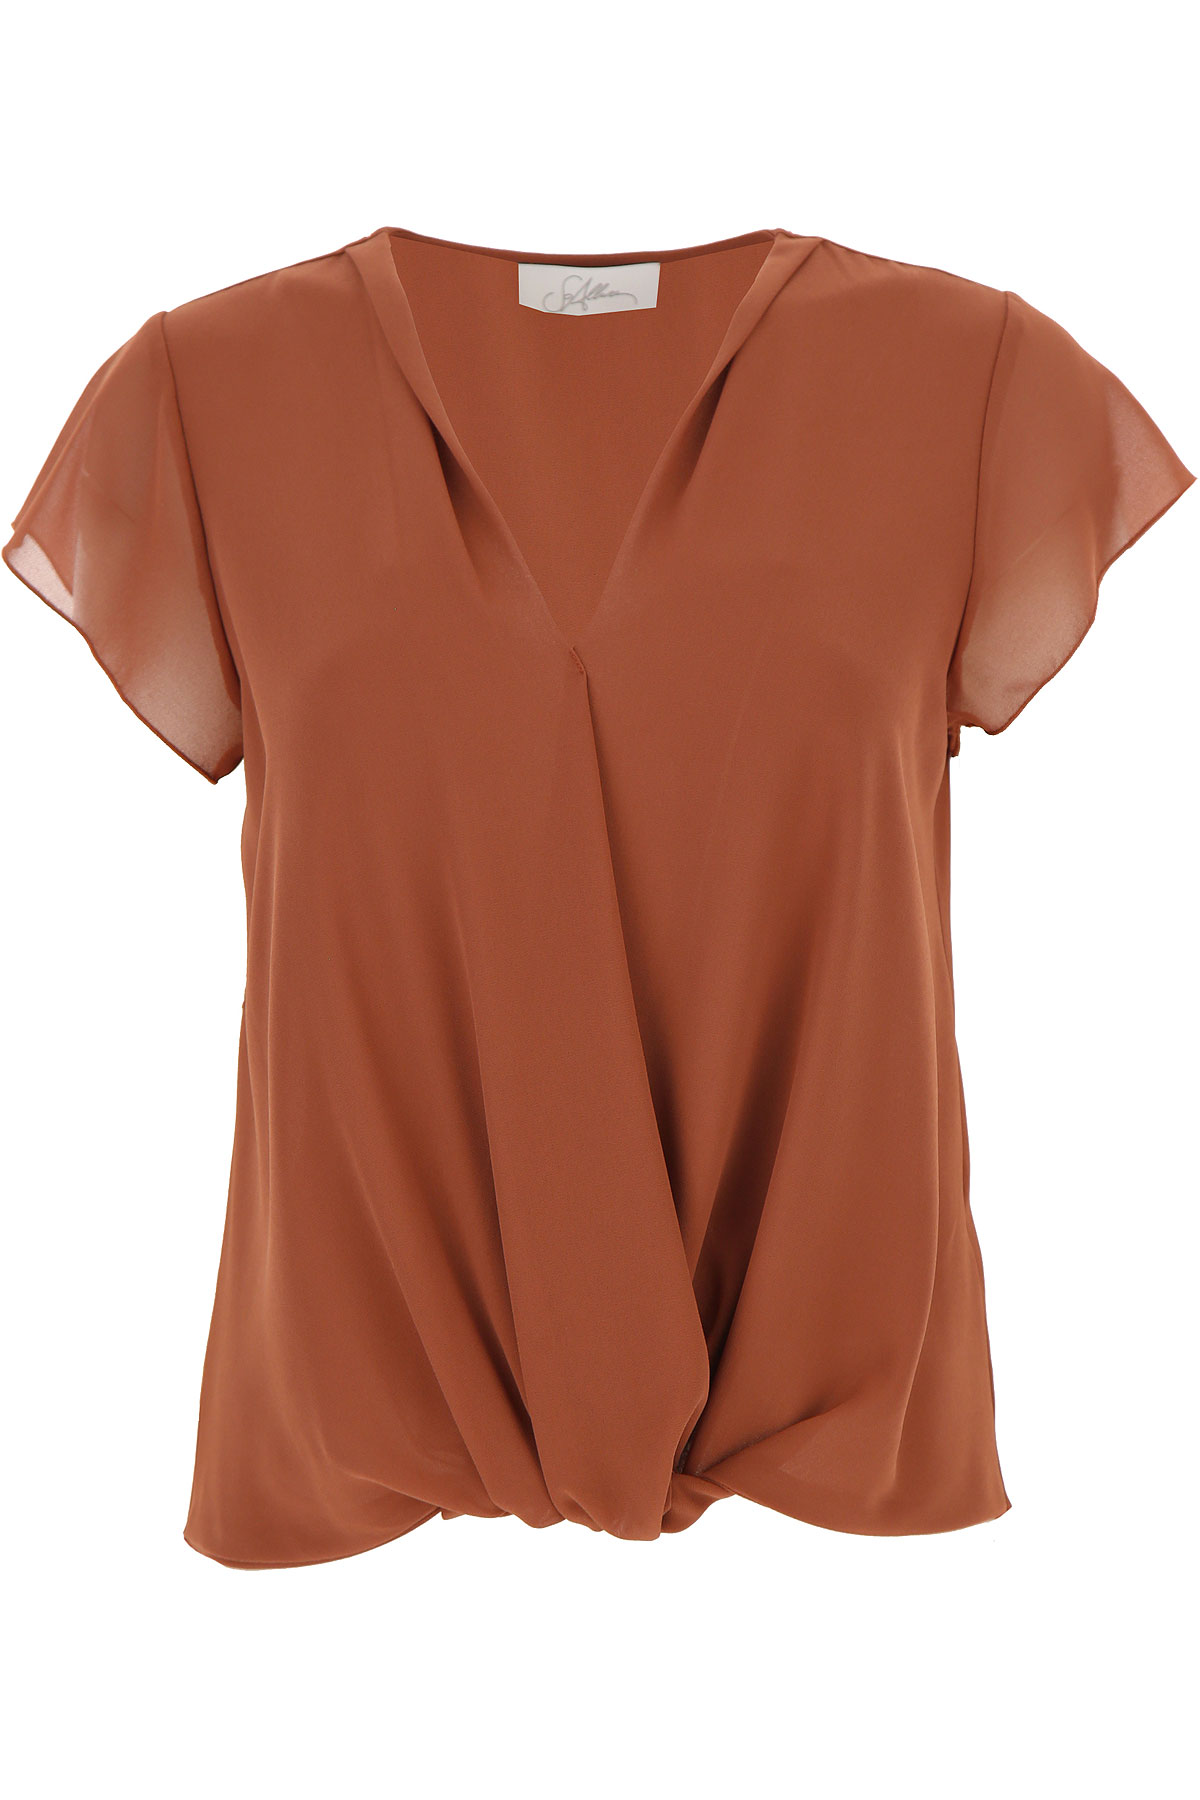 SoAllure Top for Women On Sale, Rust, polyester, 2019, 4 8